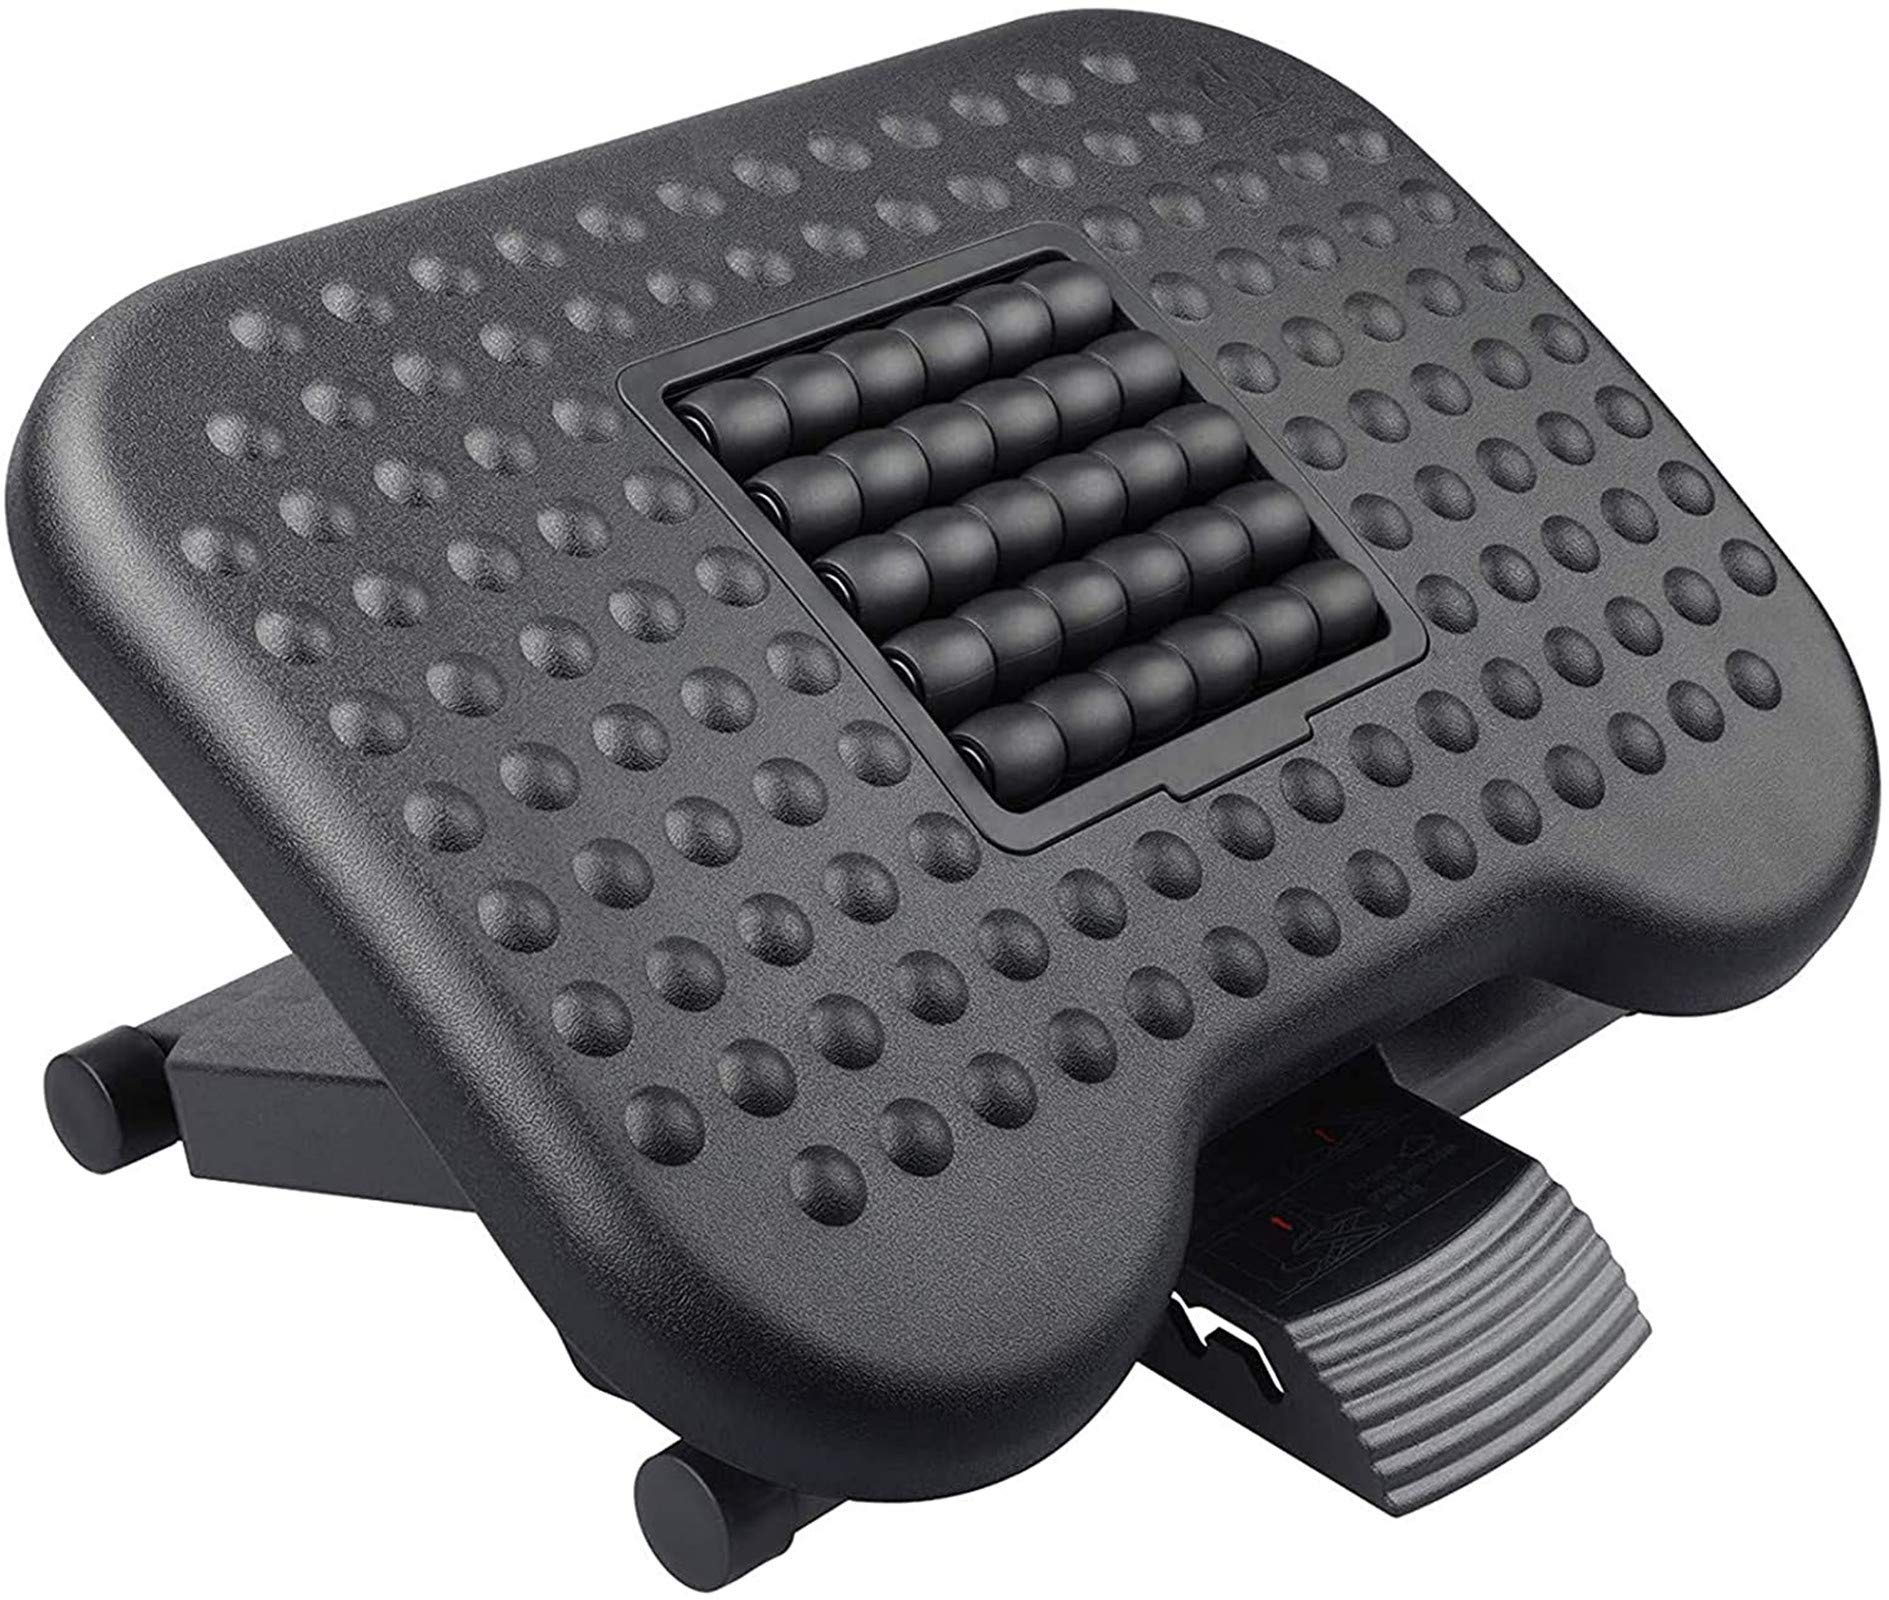 HUANUO Footrest Under Desk - Adjustable Foot Rest with Massage Texture and Roller, Ergonomic Foot Rest with 3 Height Position, 30 Degree Tilt Angle Adjustment for Home, Office